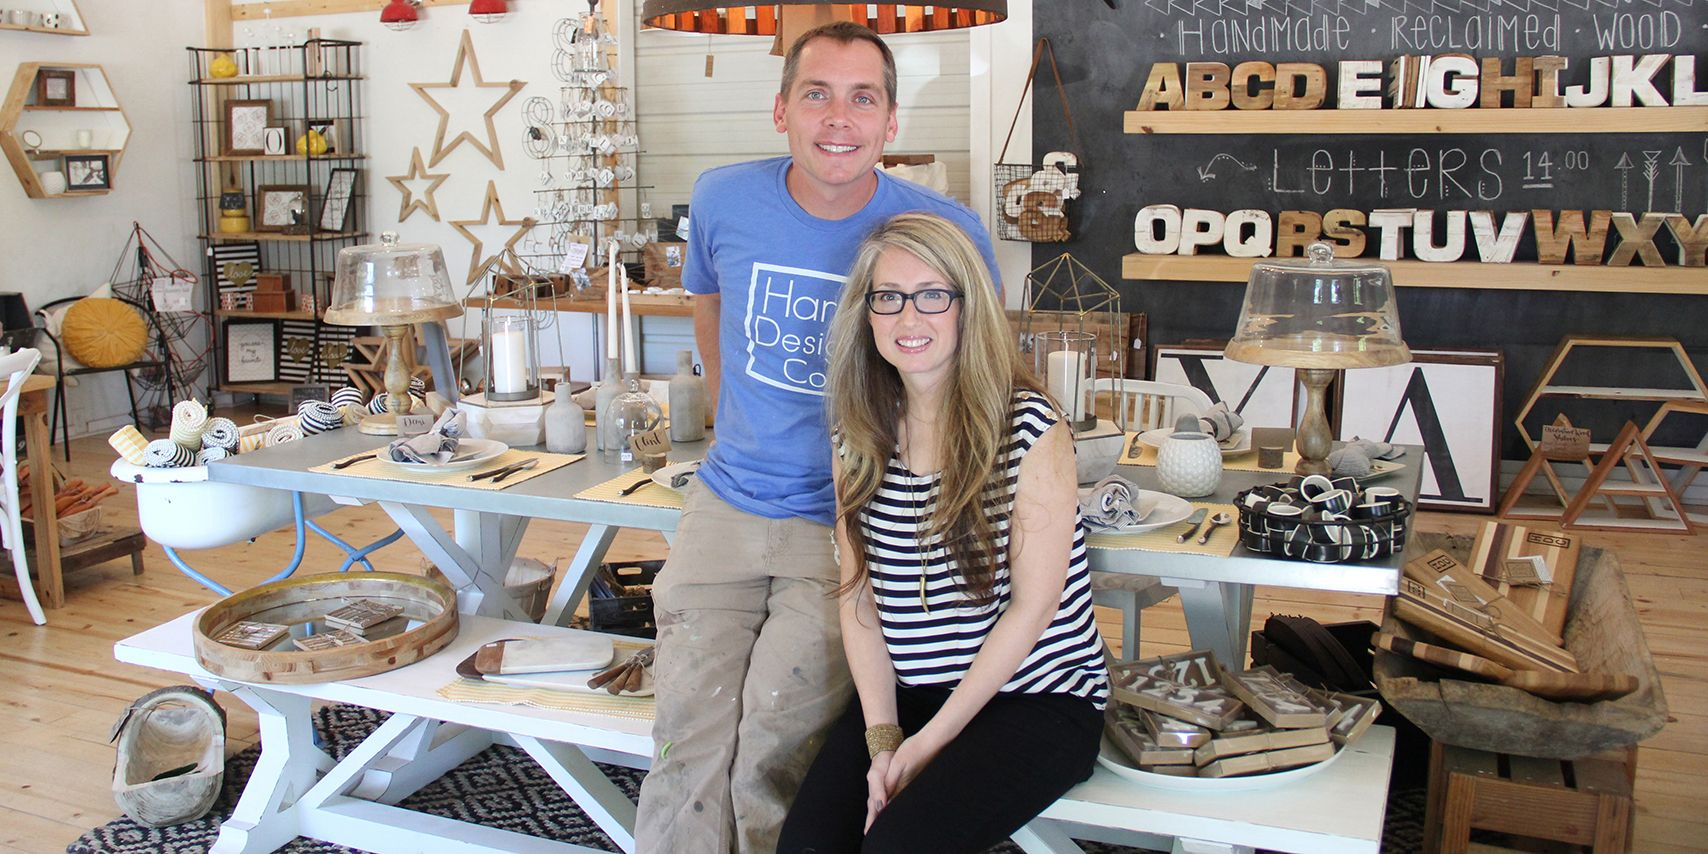 Baylor couple's 'Fixer Upper' spinoff to debut on DIY